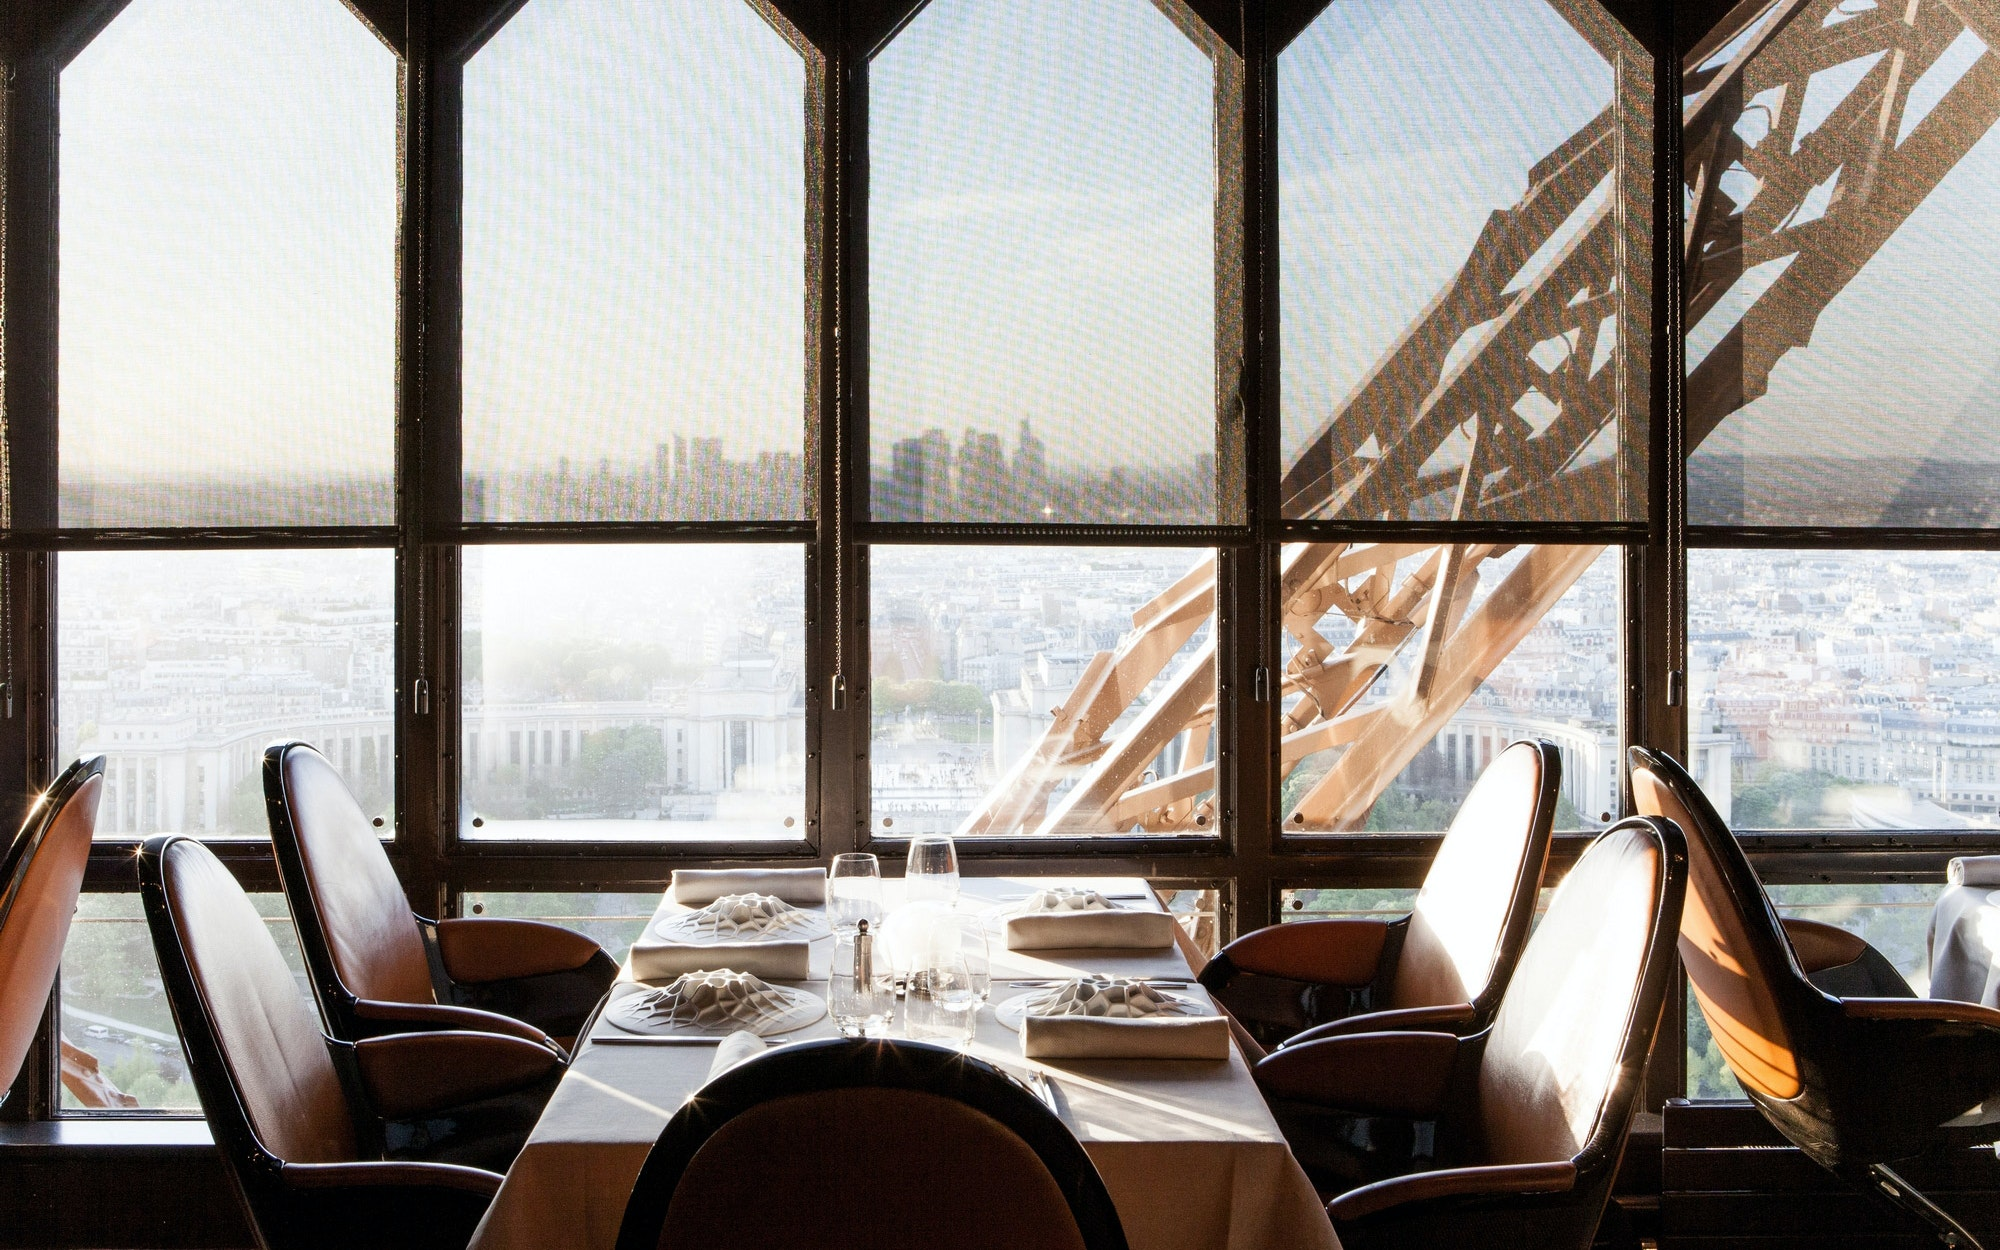 High Quality About The Eiffel Tower Restaurants